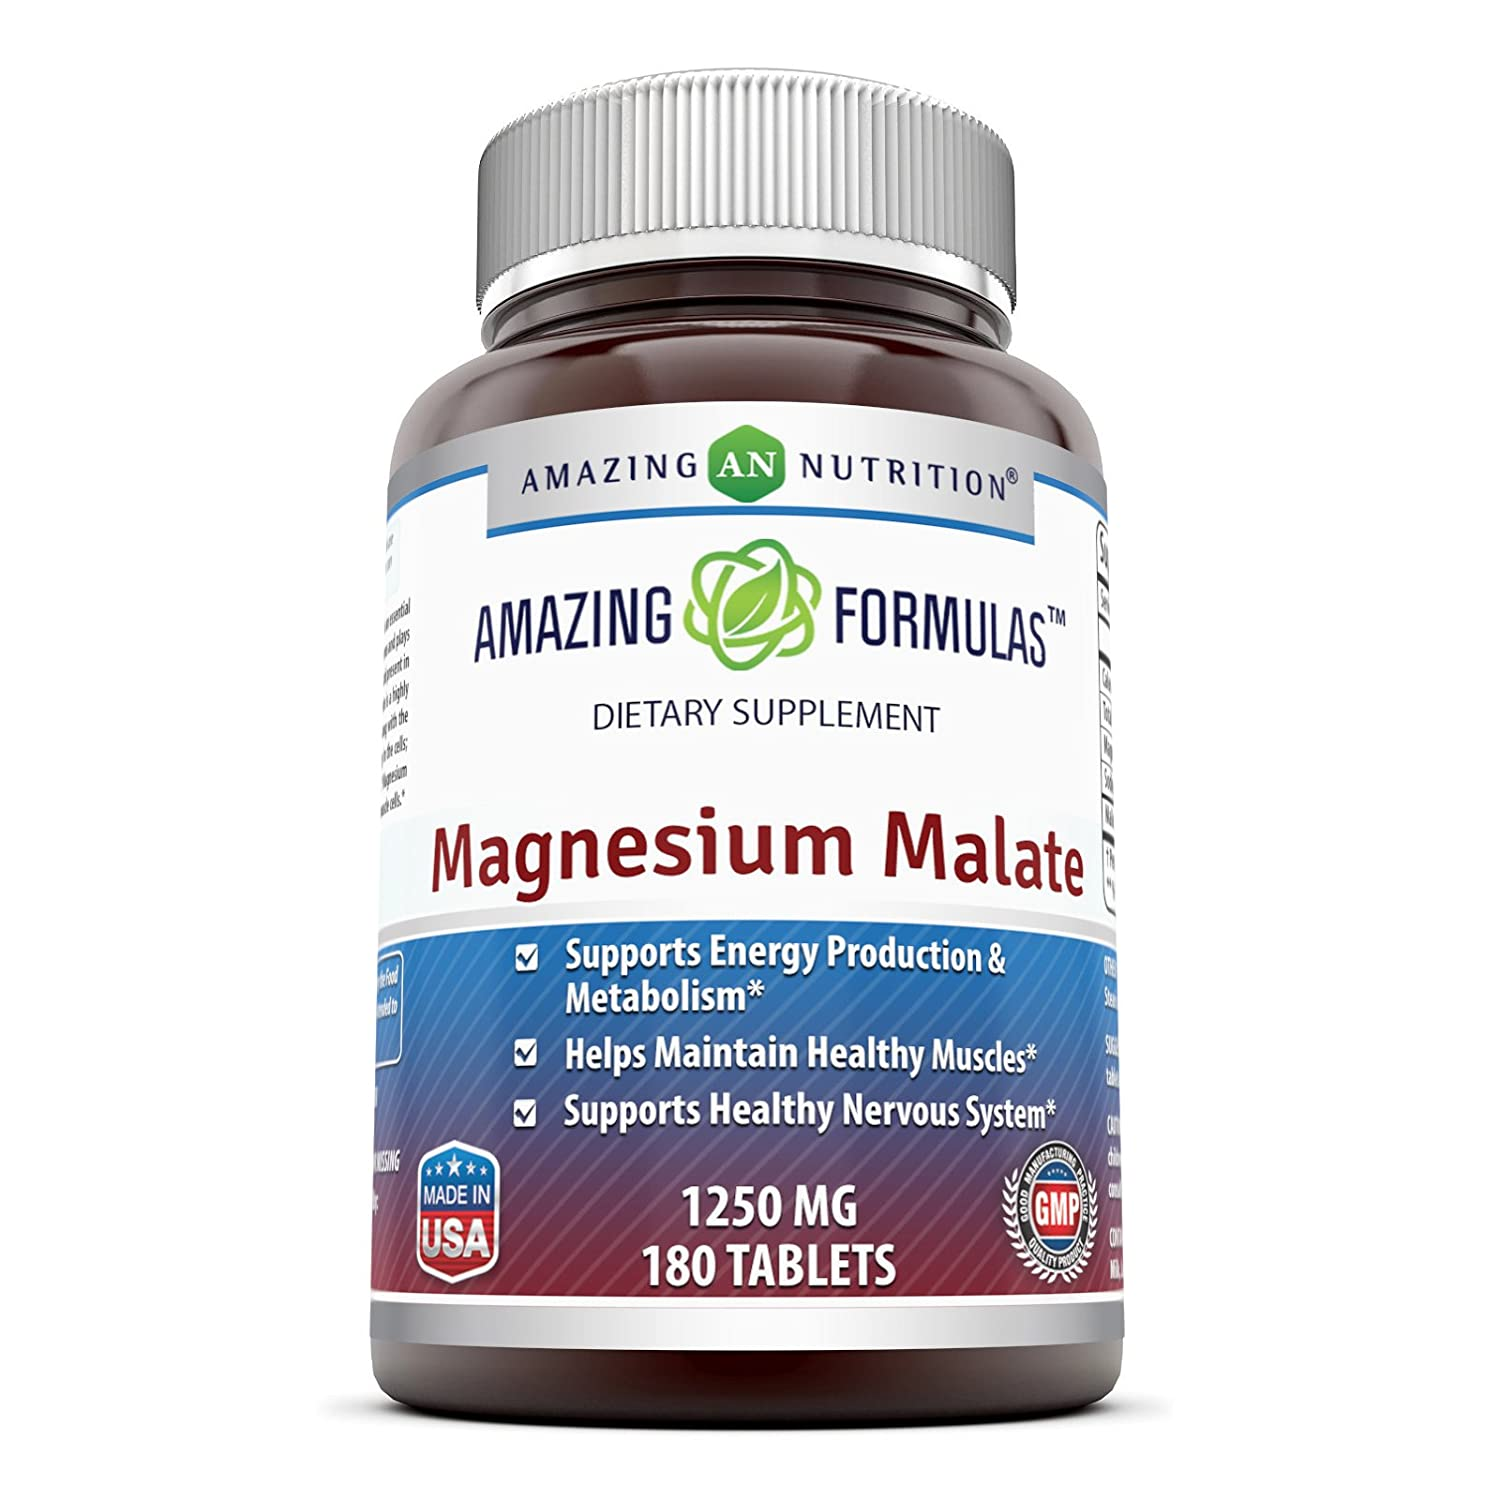 Amazing Formulas Magnesium Malate - 1250 mg per serving 180 Tablets: Amazon.es: Salud y cuidado personal